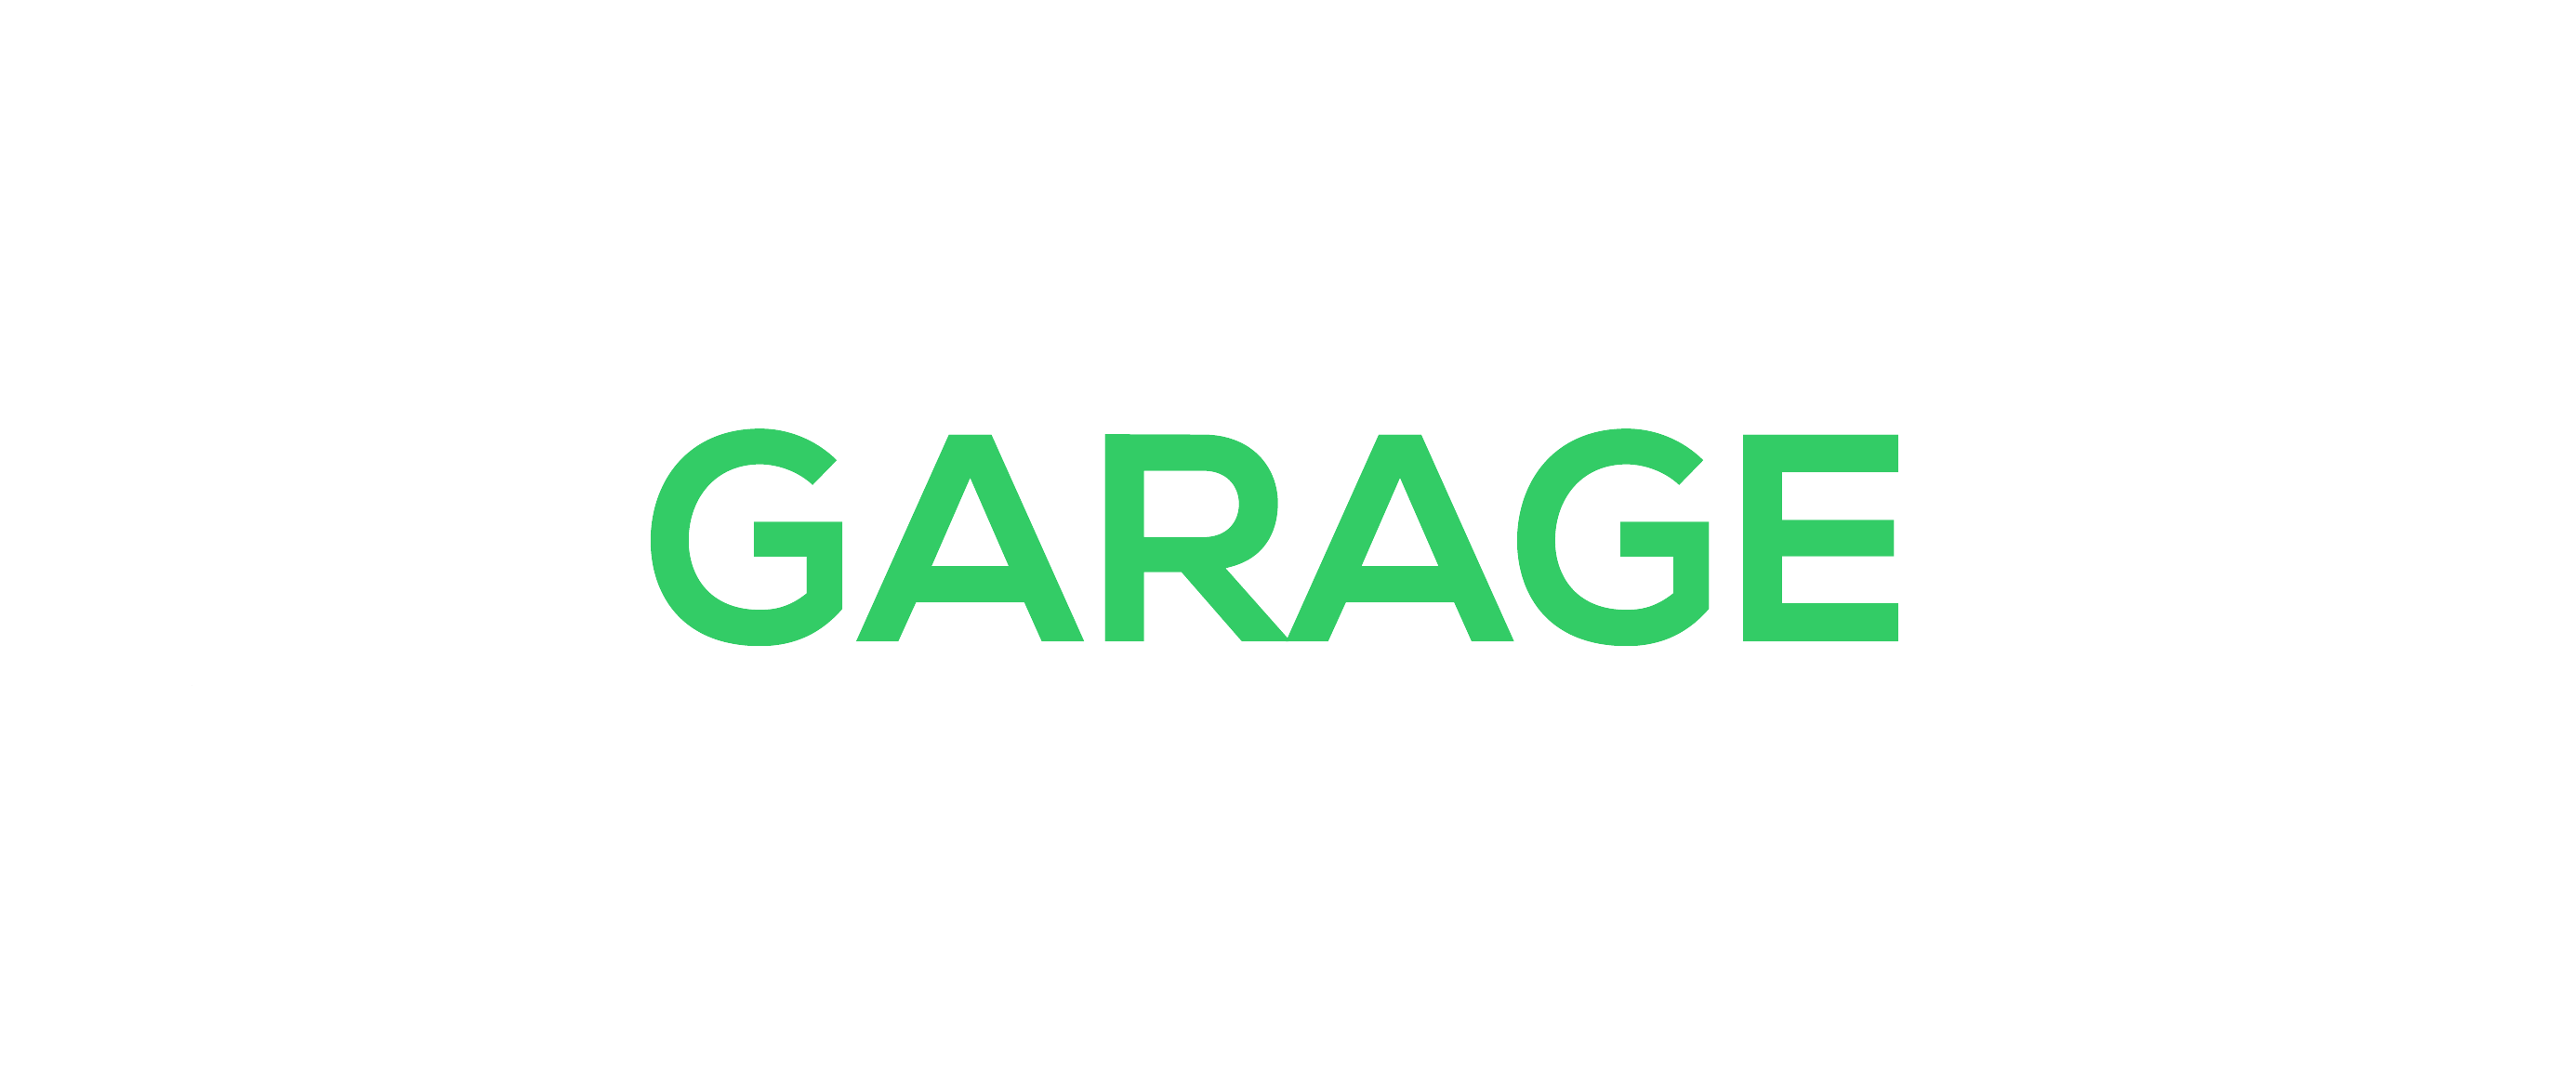 Garage gym planner yelloyello